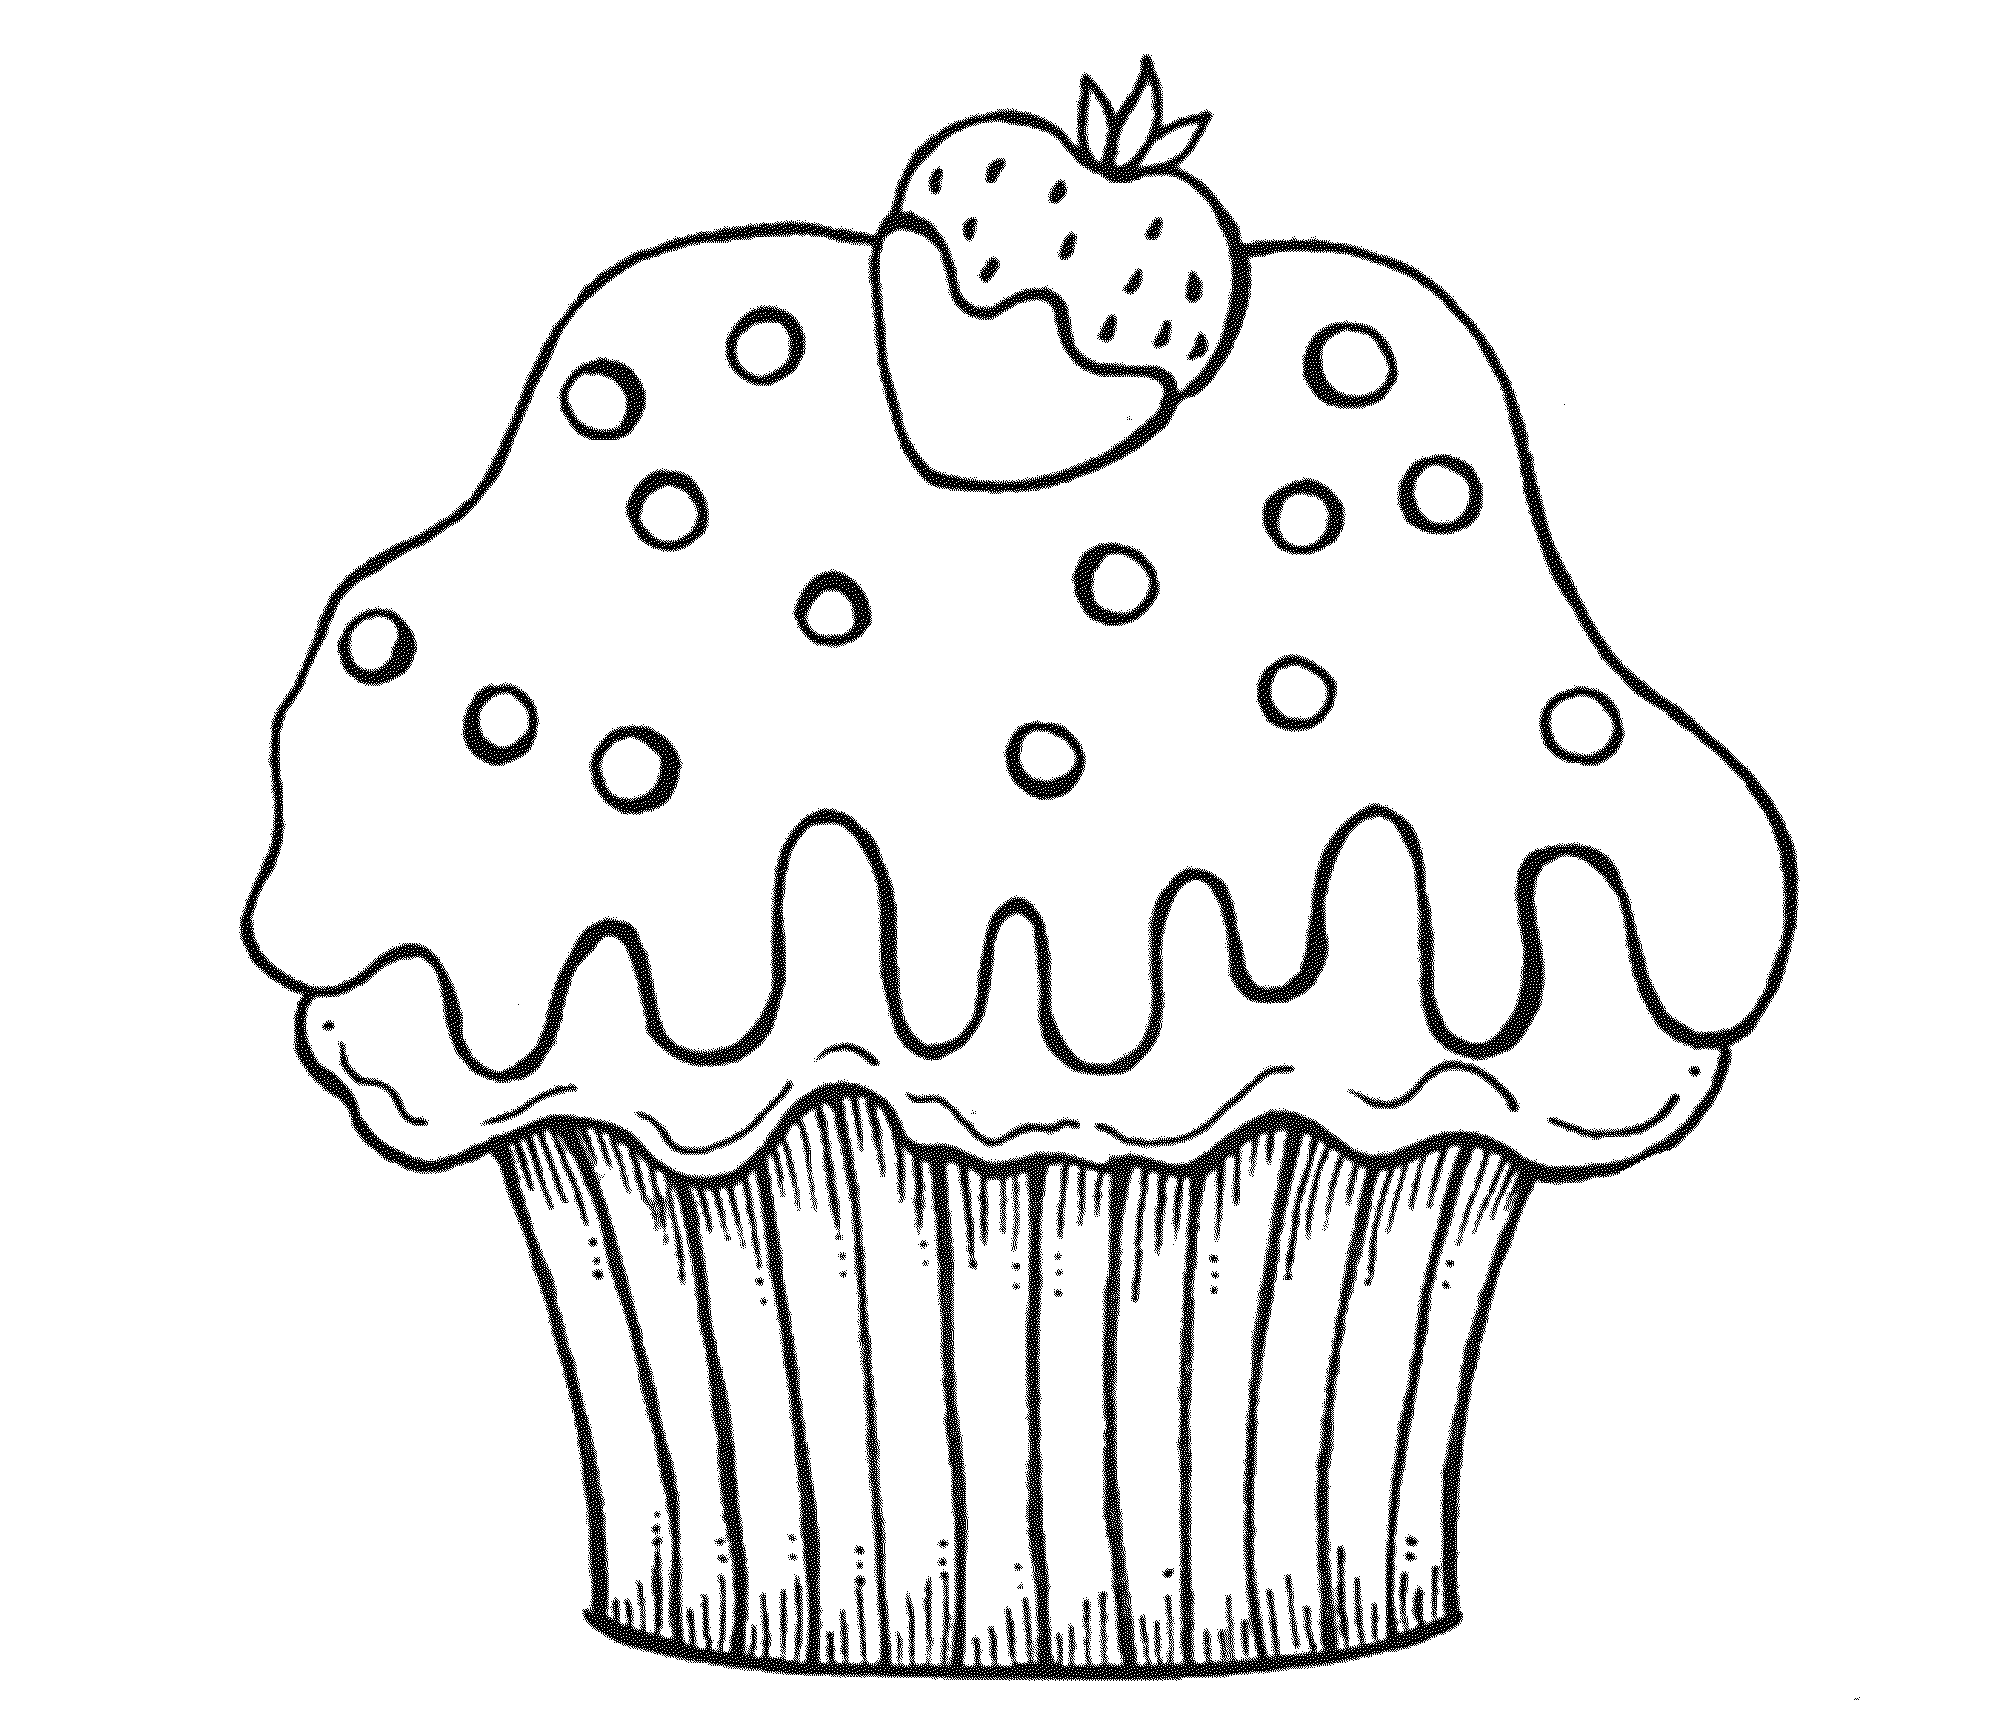 Free Cupcake Coloring Pages at GetDrawings.com | Free for personal ...